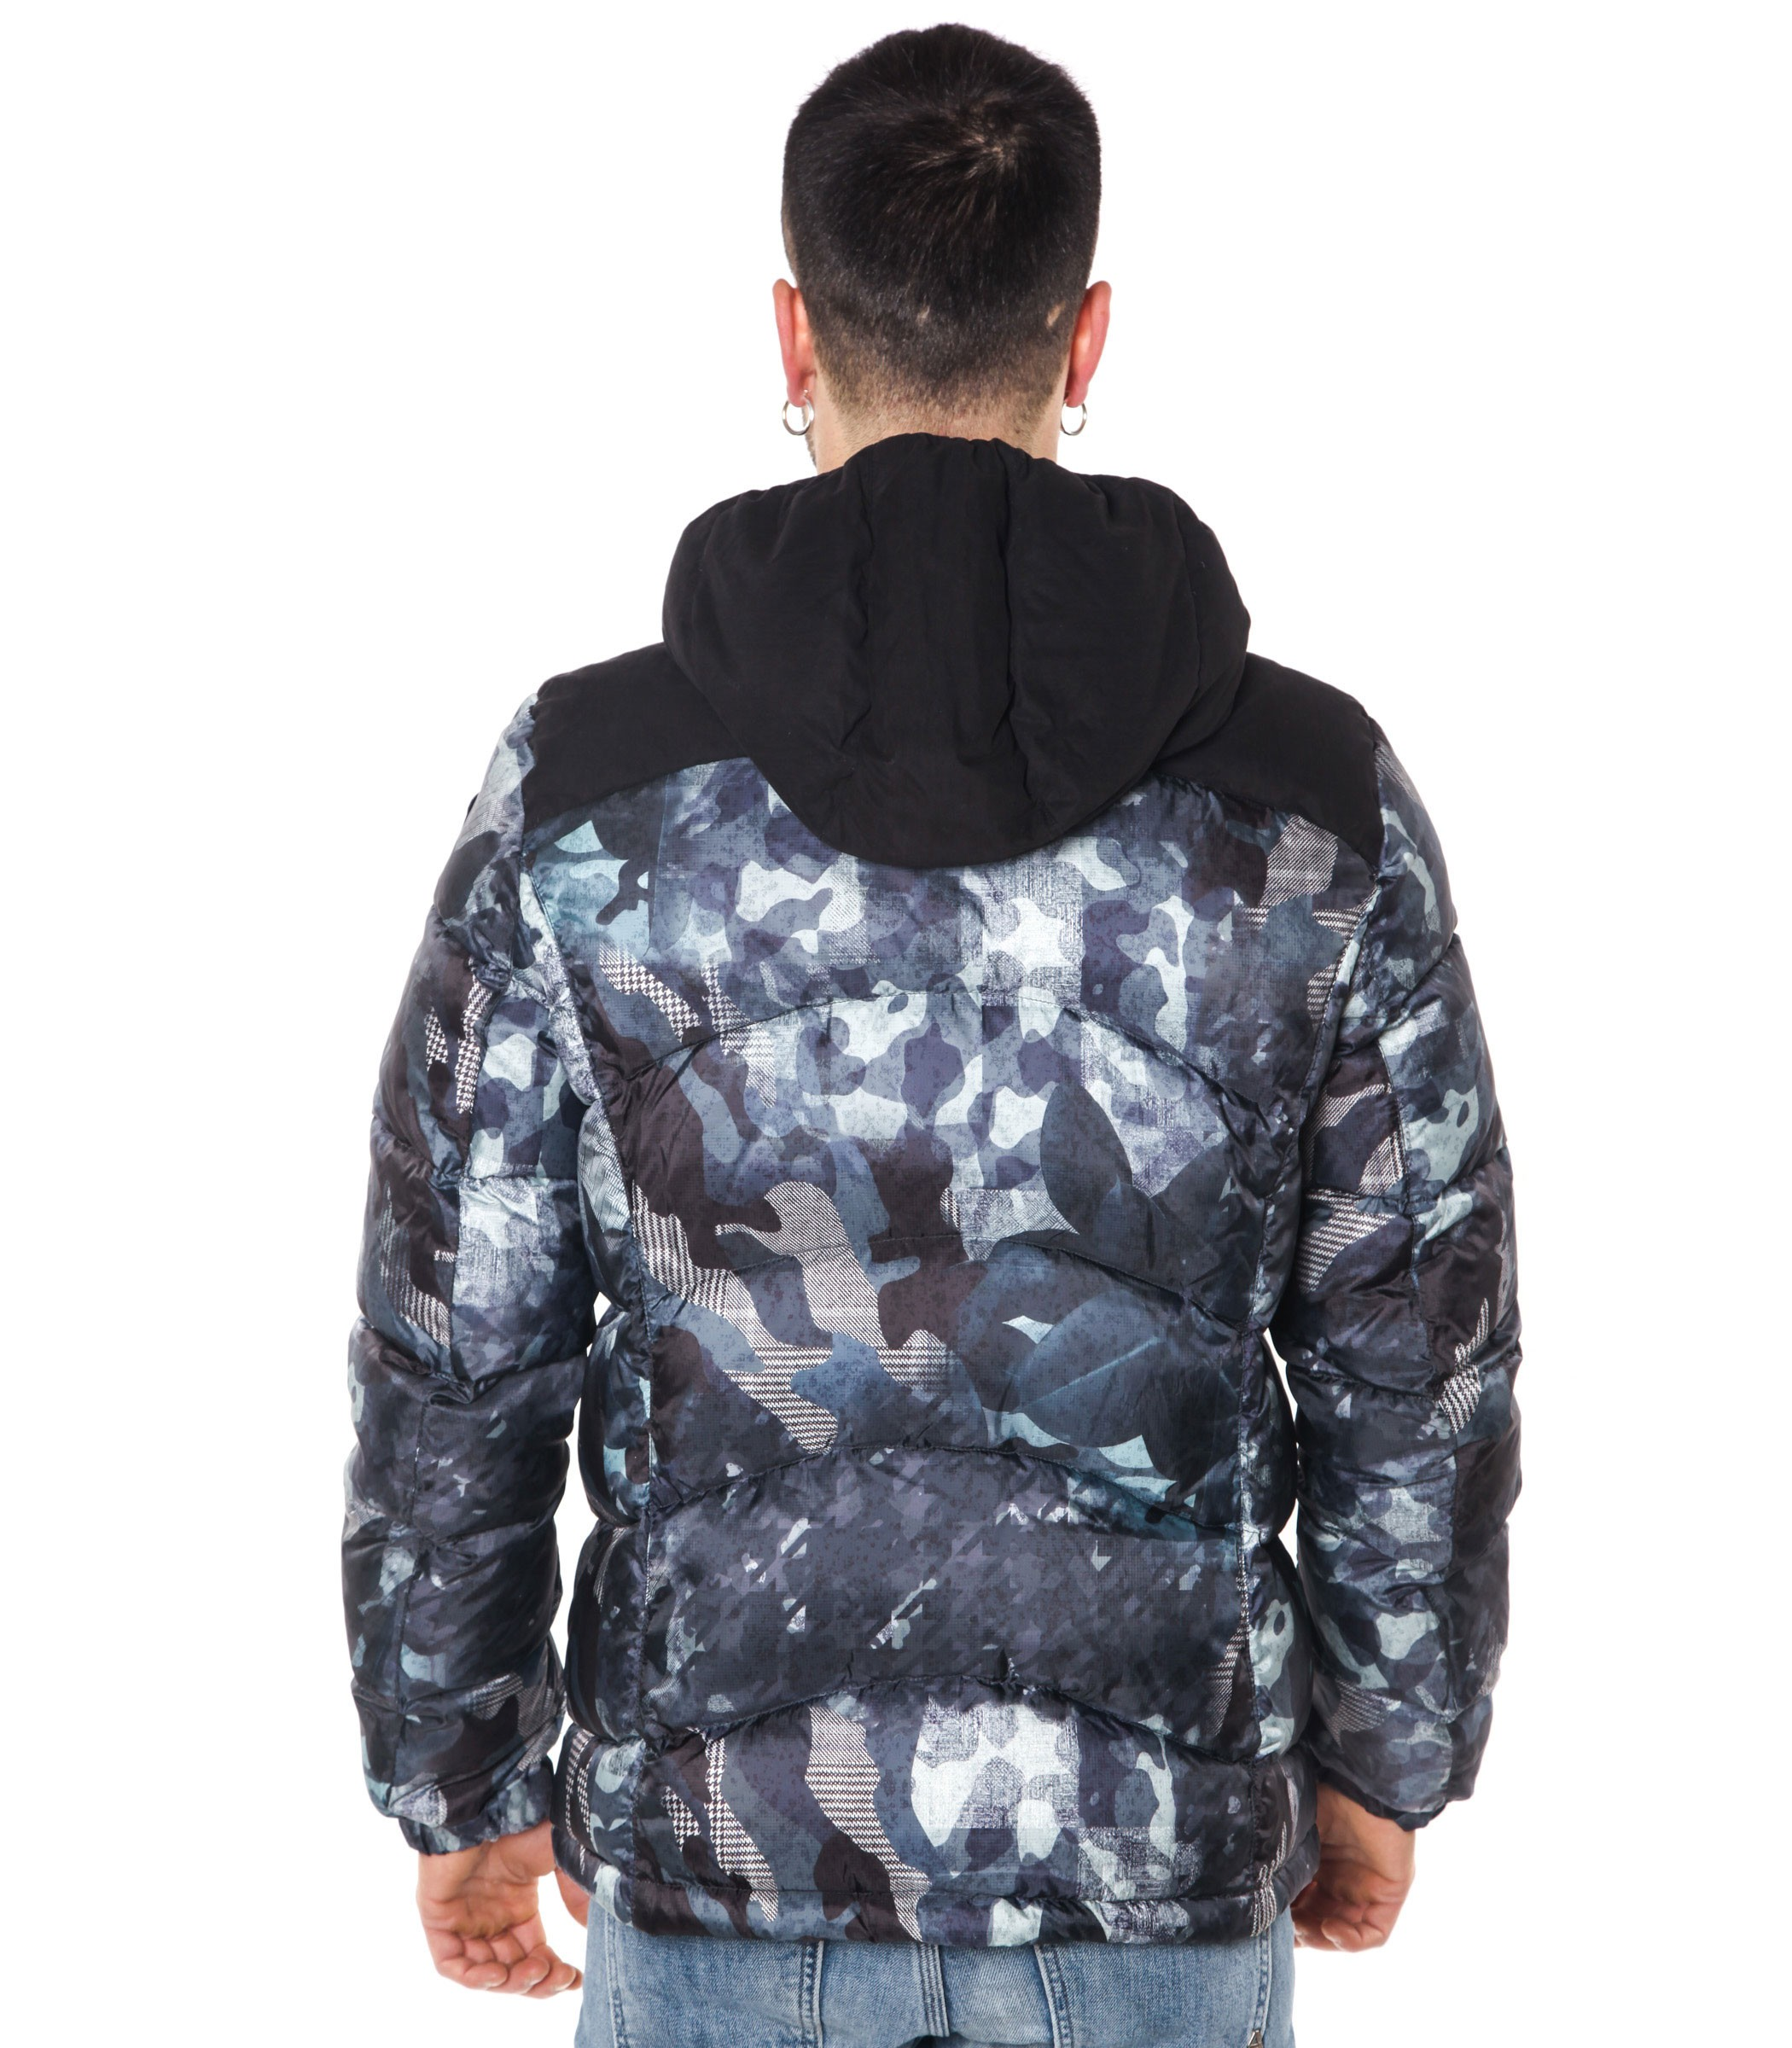 huge selection of d64e8 7517b Giubbotto Piumino Blauer USA camouflage uomo rif ...